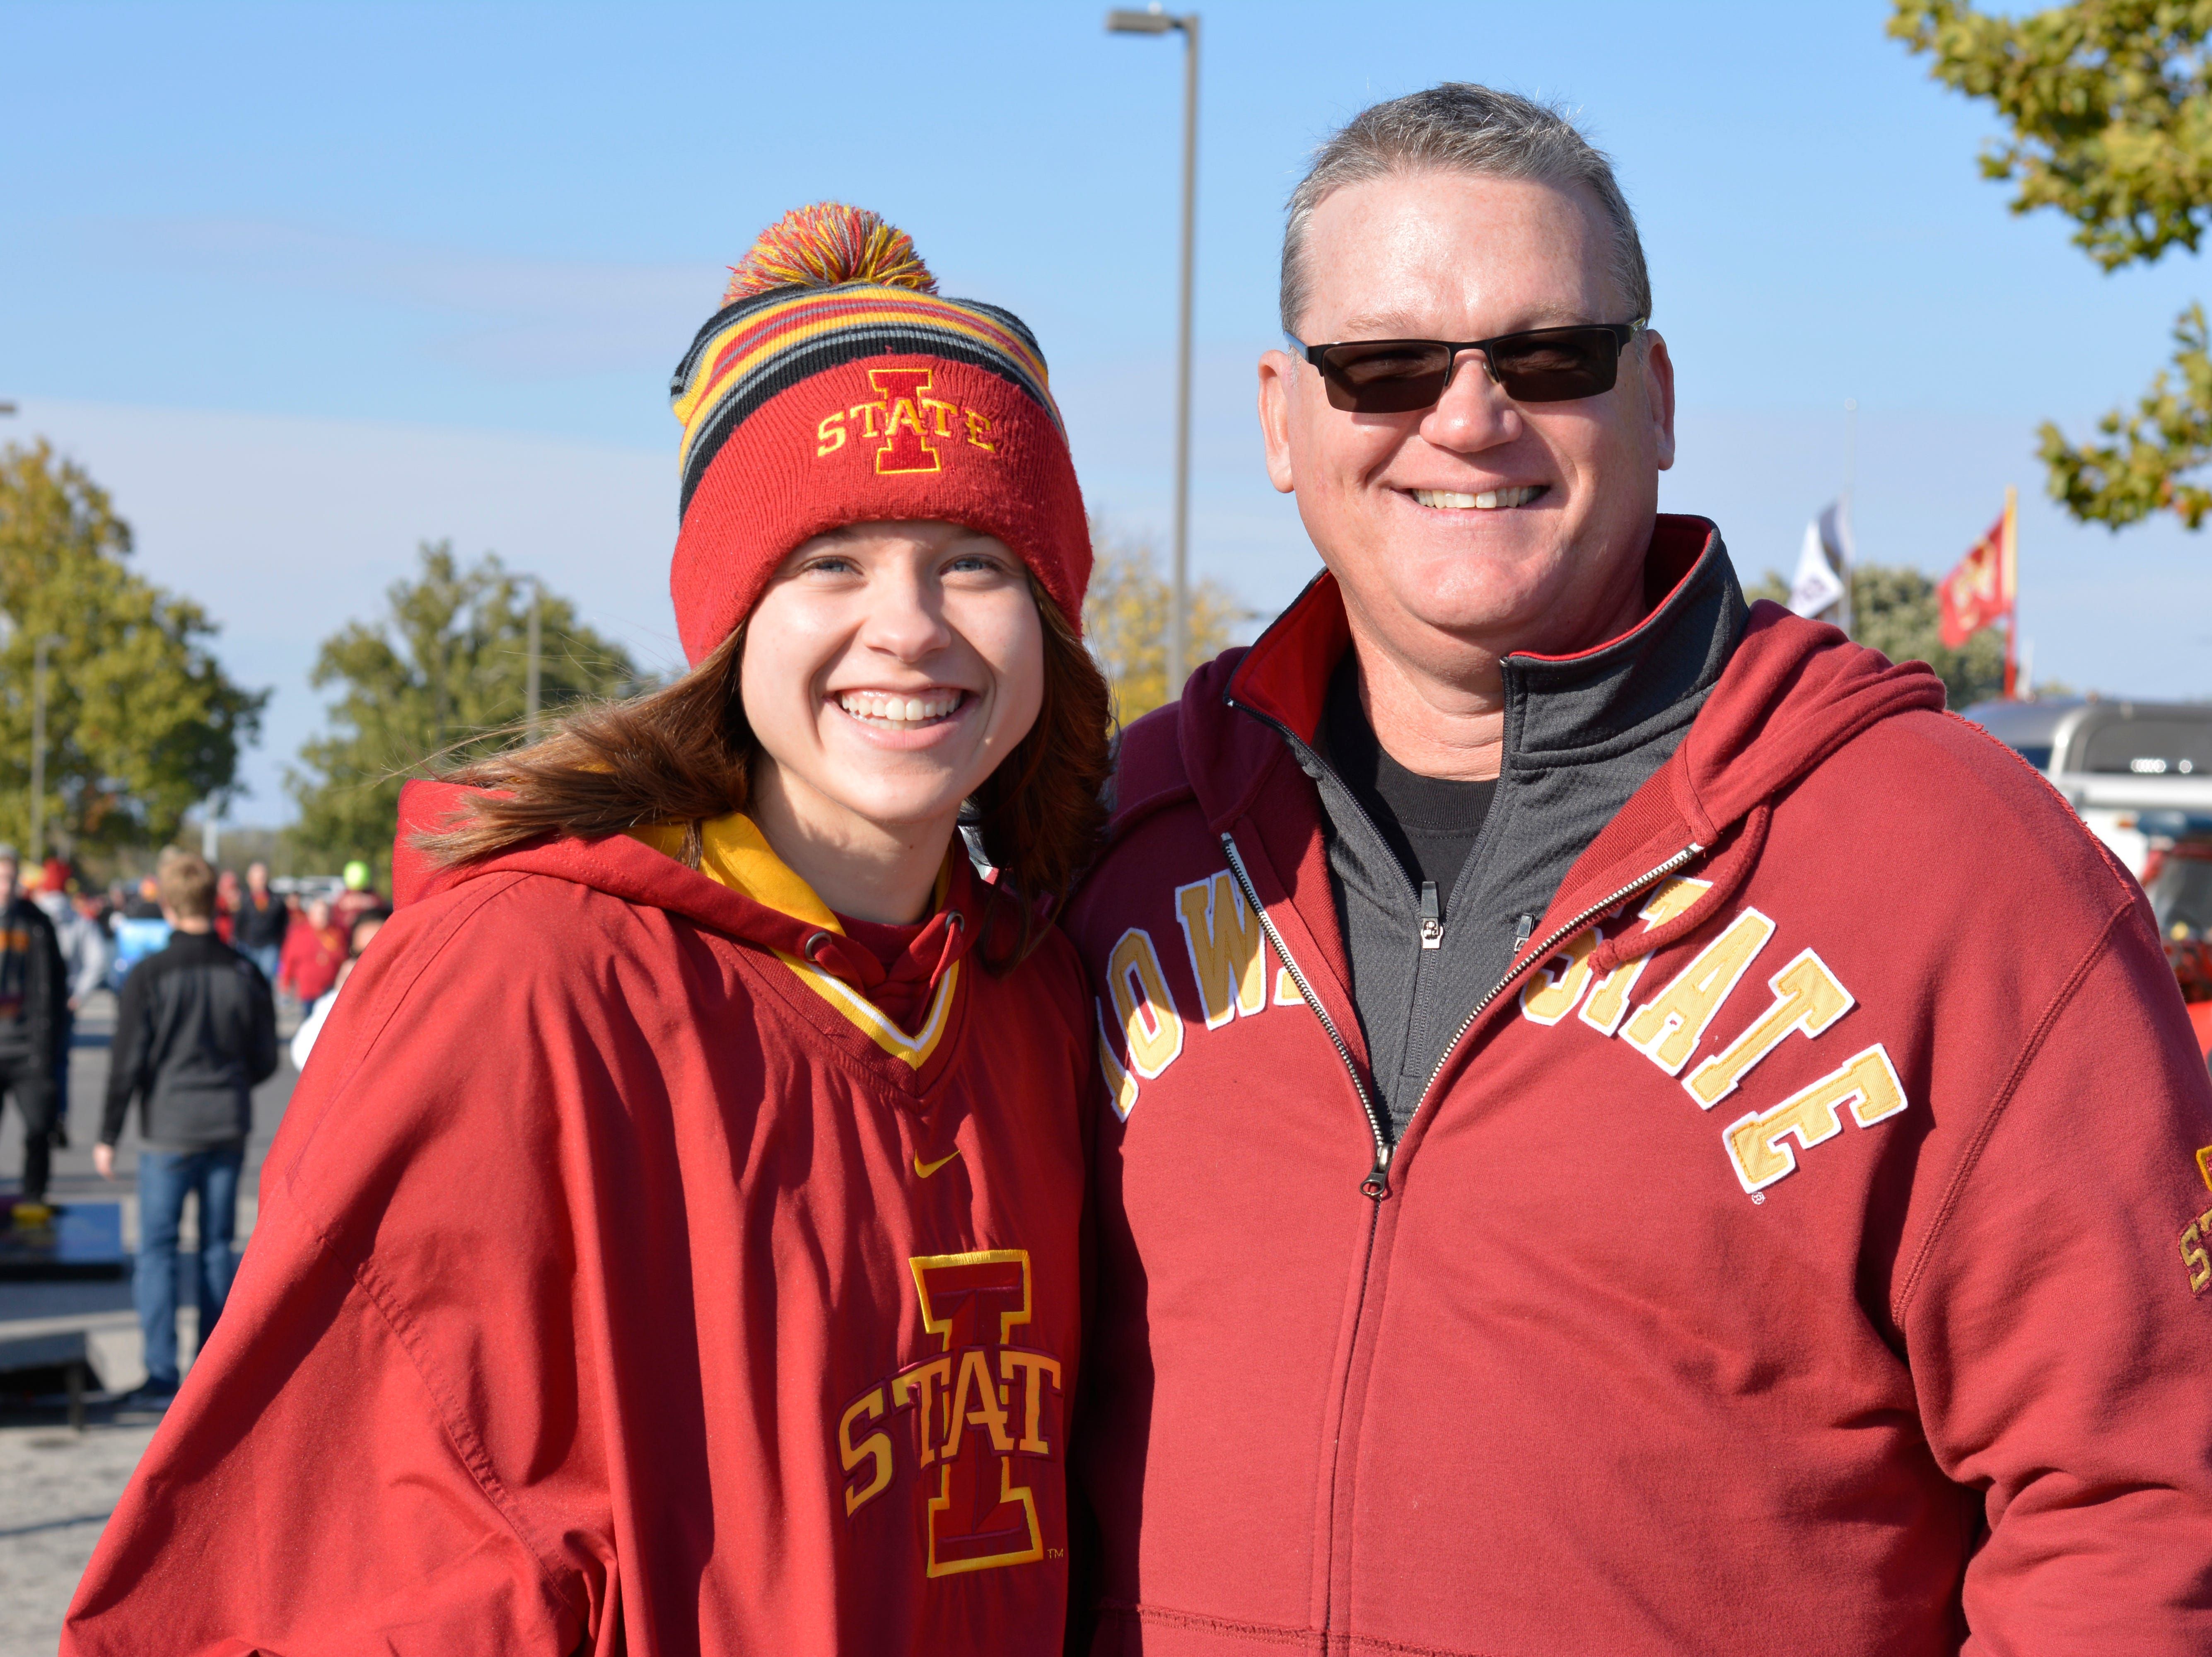 Maddy Danner and Jason Danner before the Iowa State University football game against West Virginia in Ames on Oct. 13.